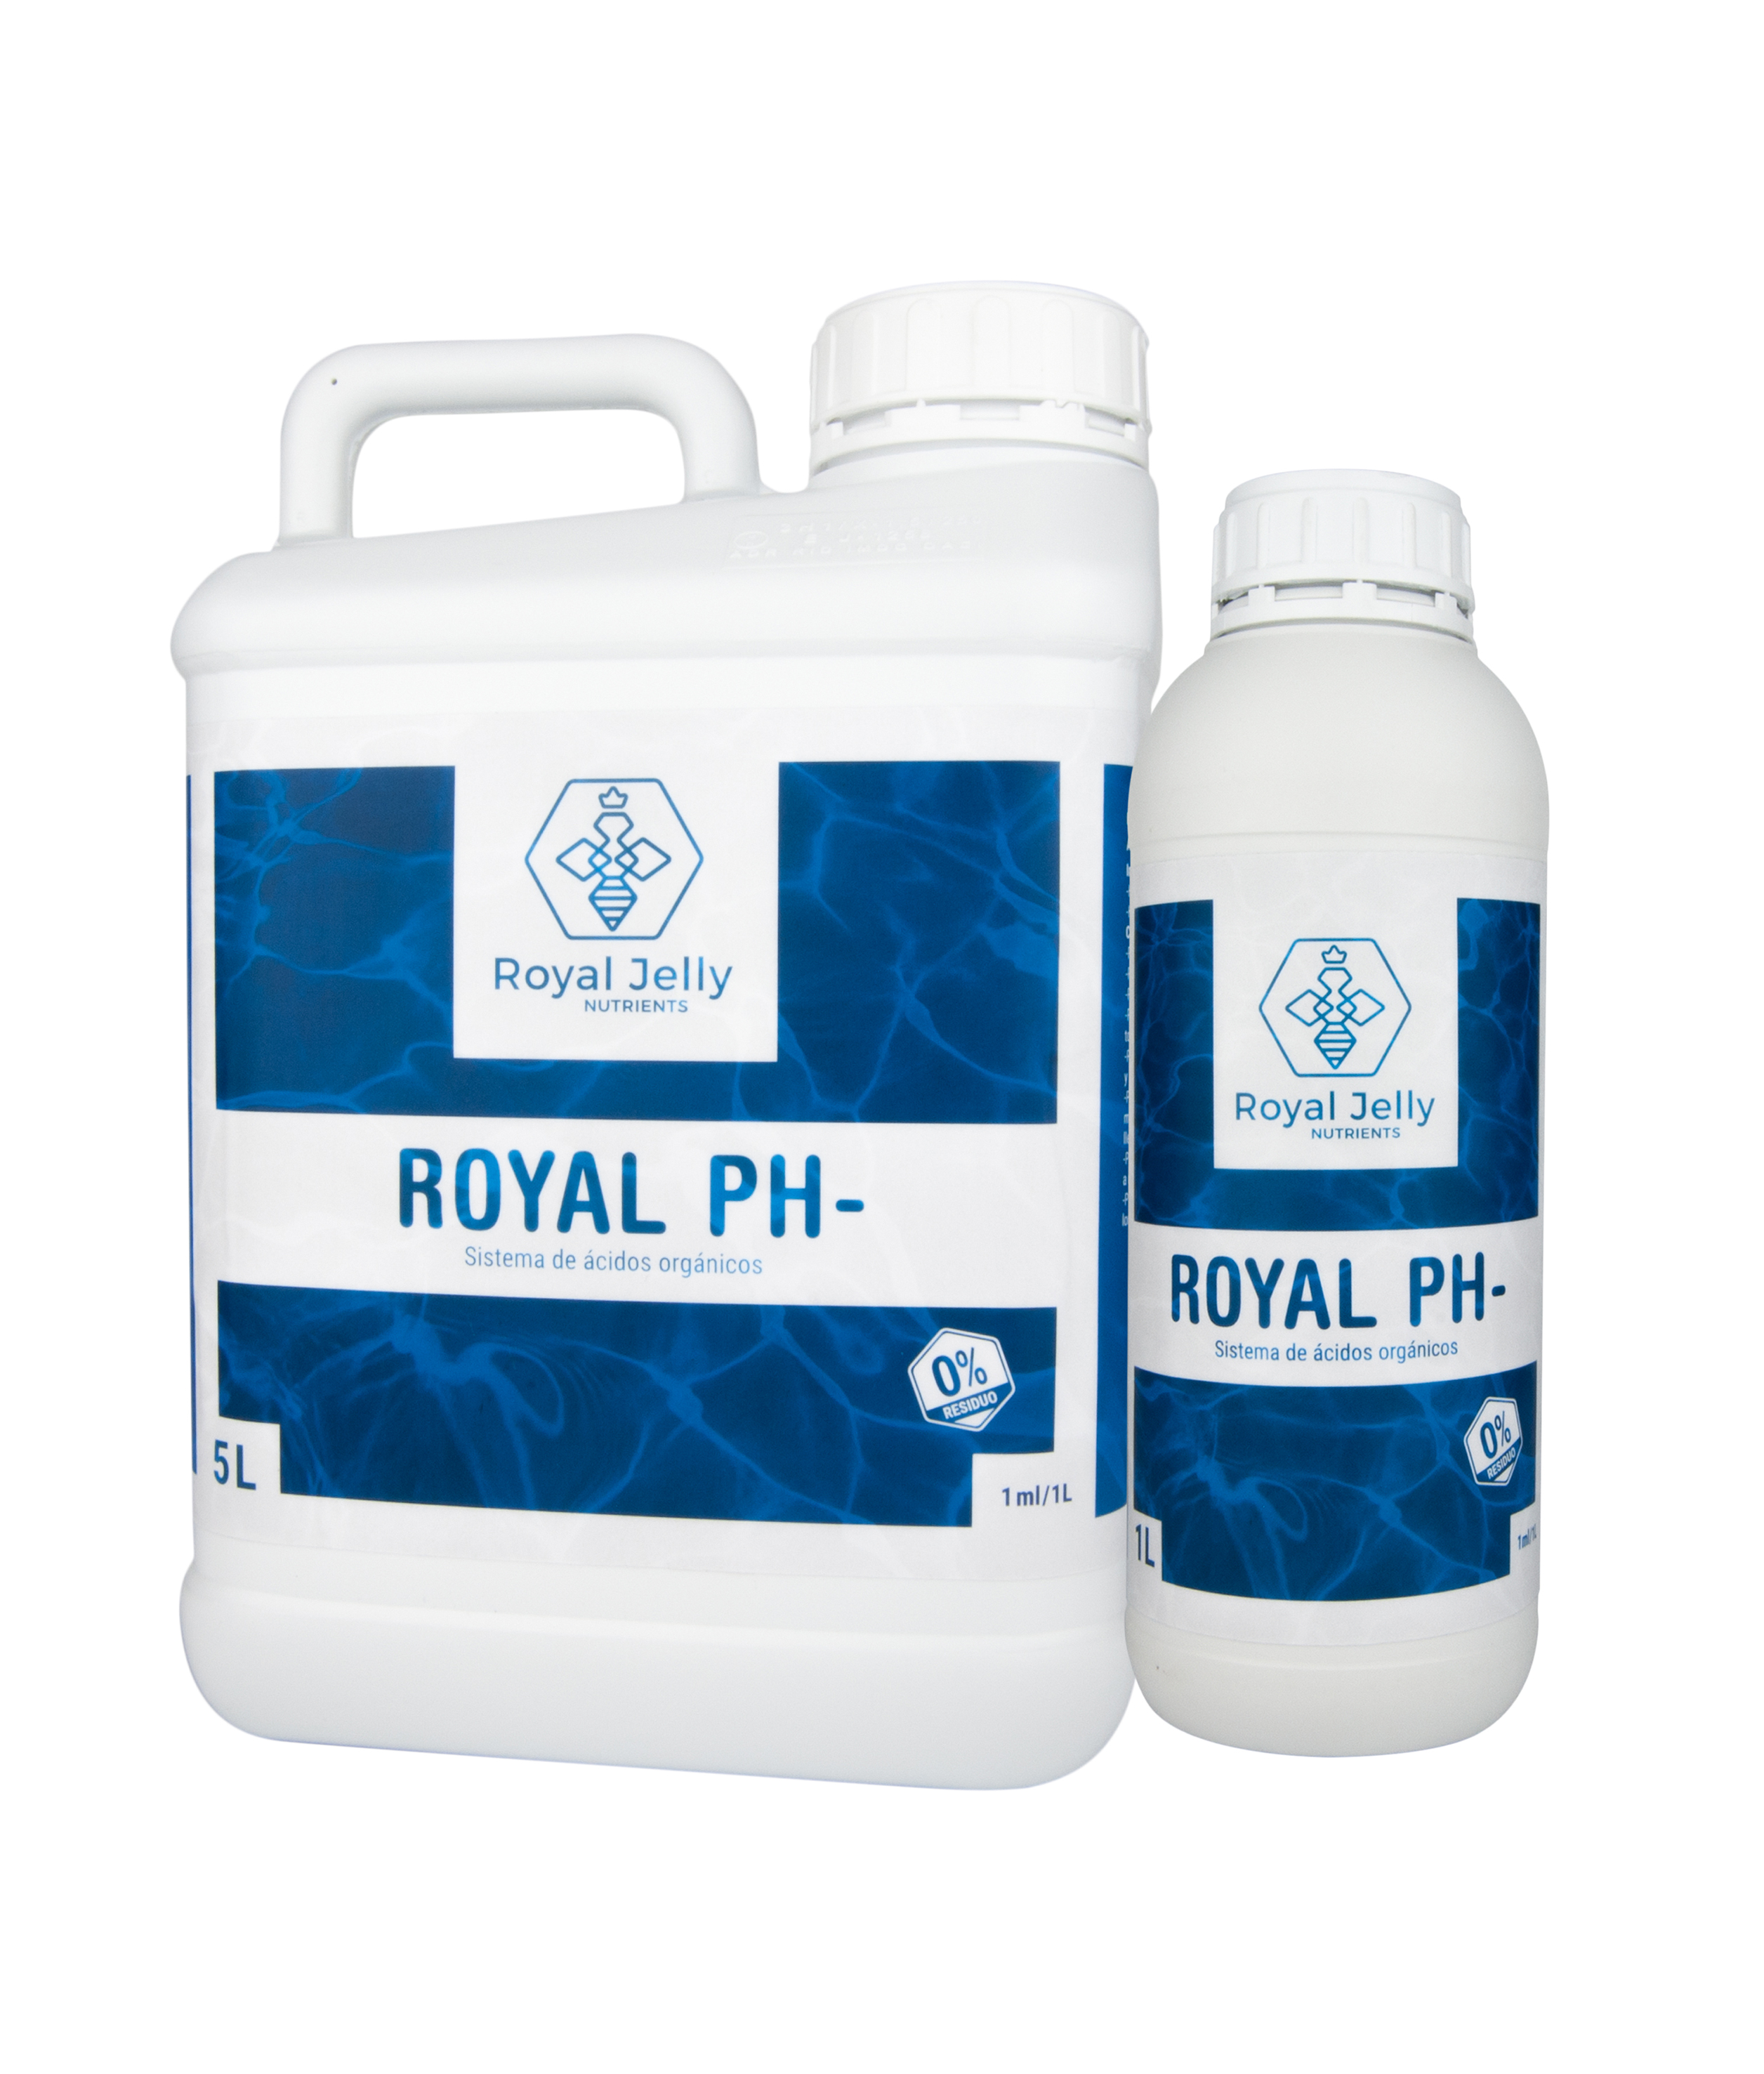 royal PH bodegó proba